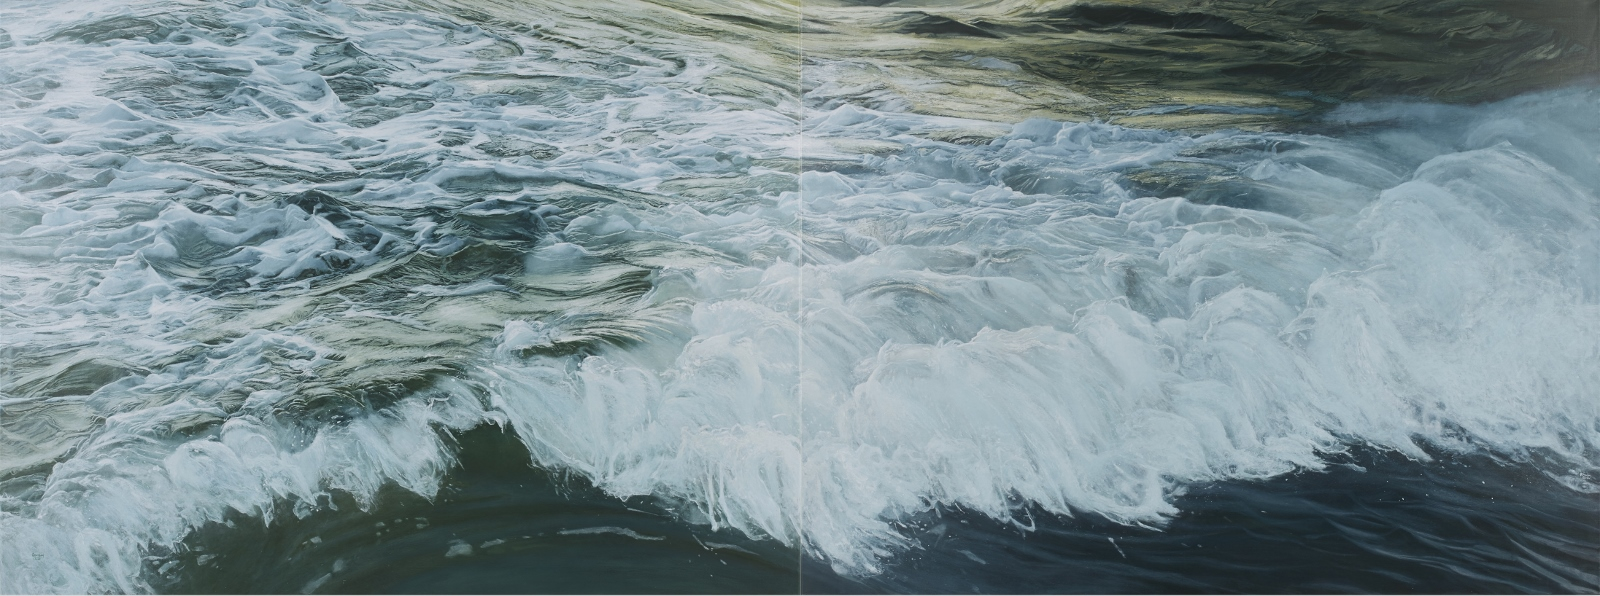 morning wave 2018 (diptych)